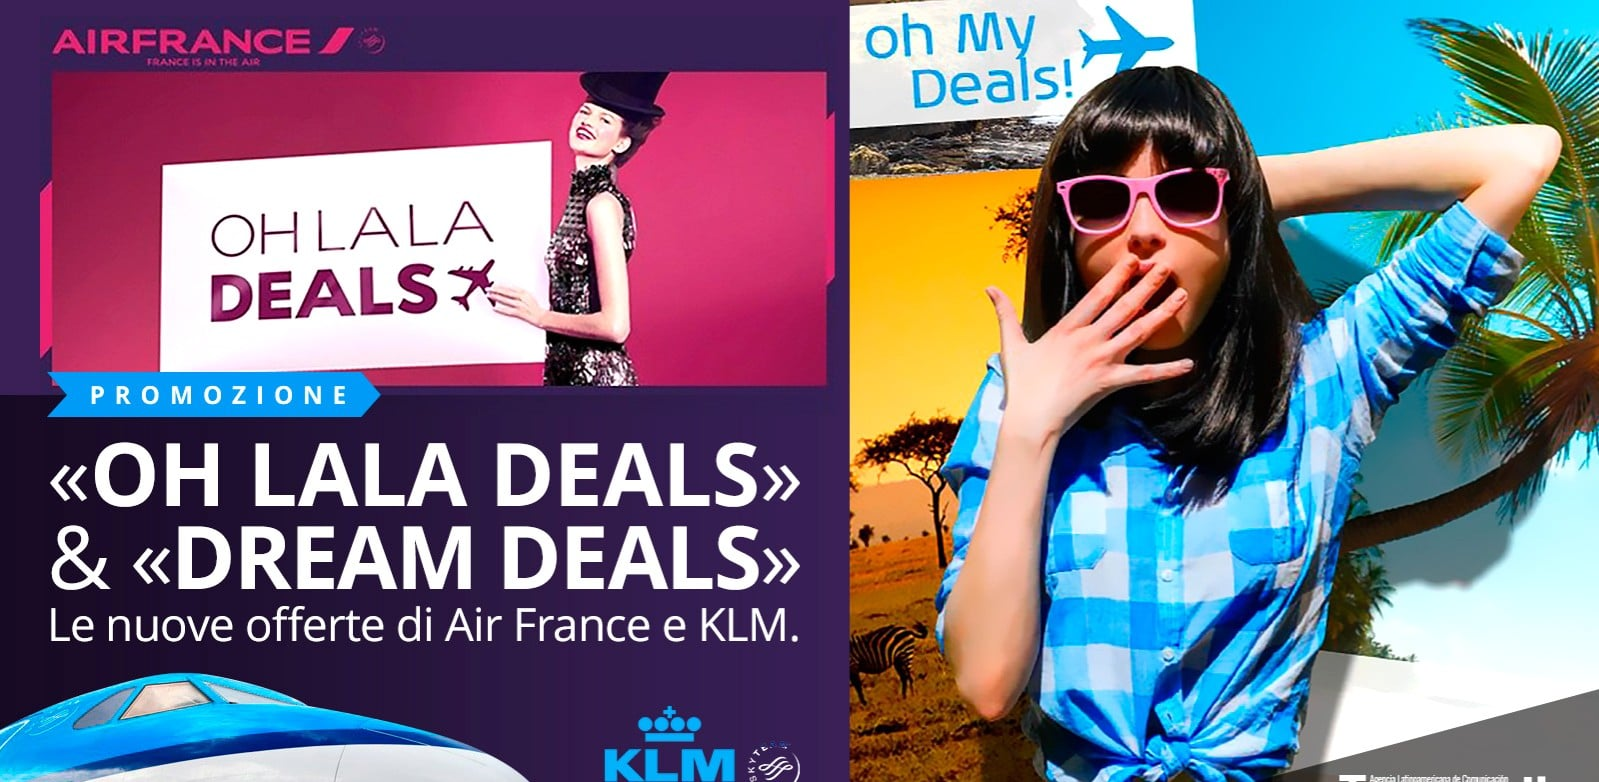 promo air France : offre billet d'avion pas cher